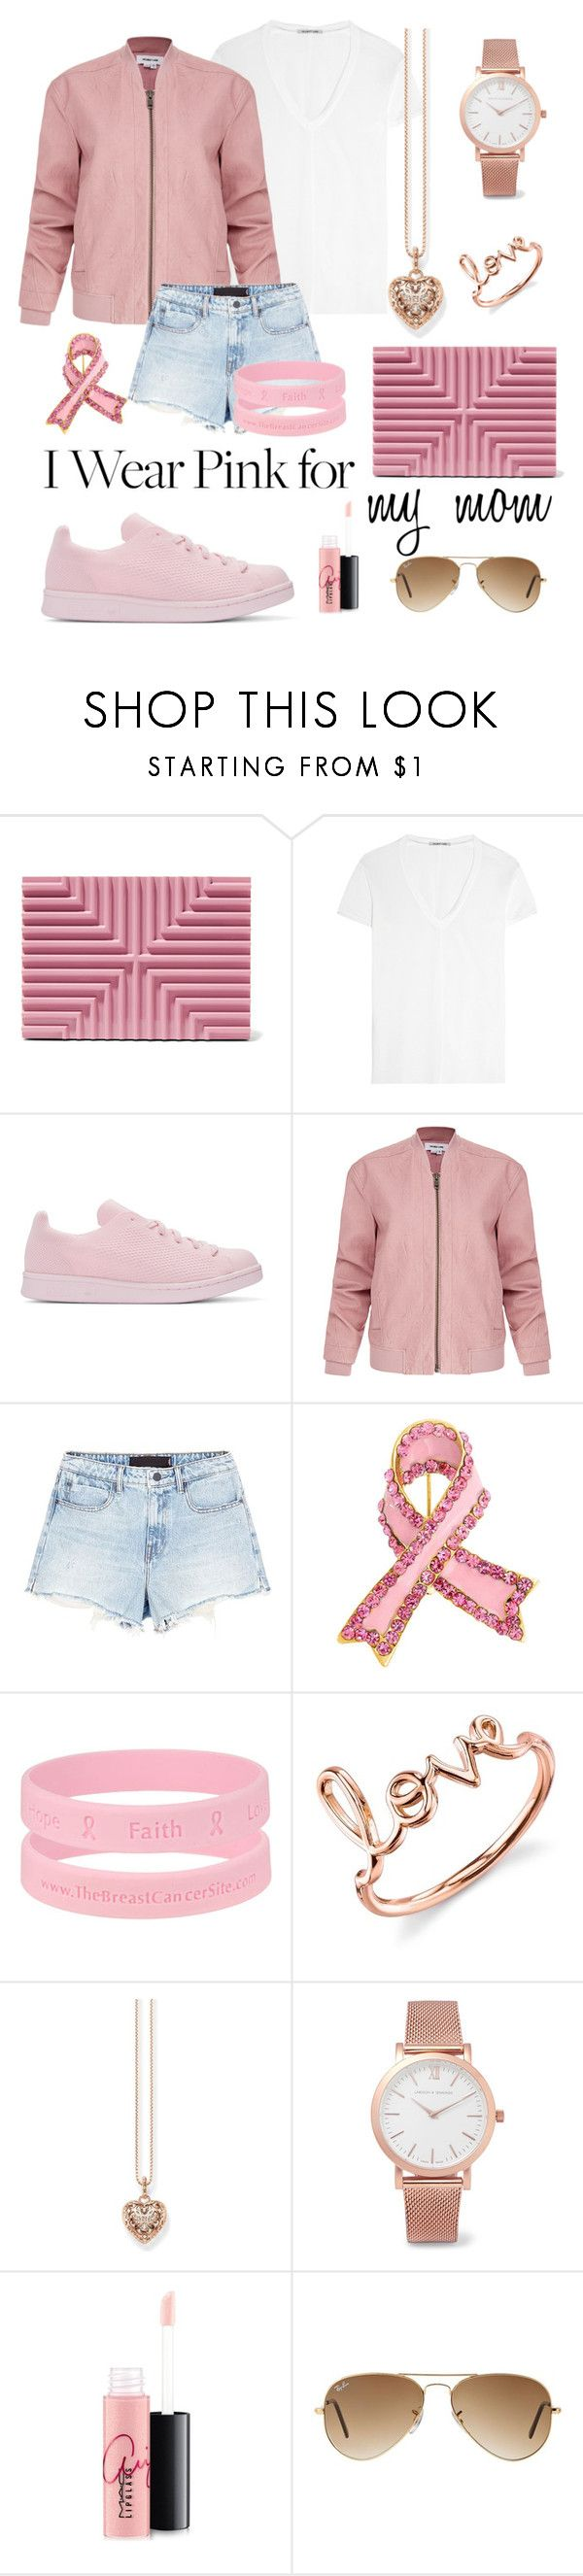 """Love sneakers"" by lomozui ❤ liked on Polyvore featuring Lee Savage, Helmut Lang, adidas Originals, Alexander Wang, Bling Jewelry, Sydney Evan, Thomas Sabo, Larsson & Jennings, MAC Cosmetics and Ray-Ban"